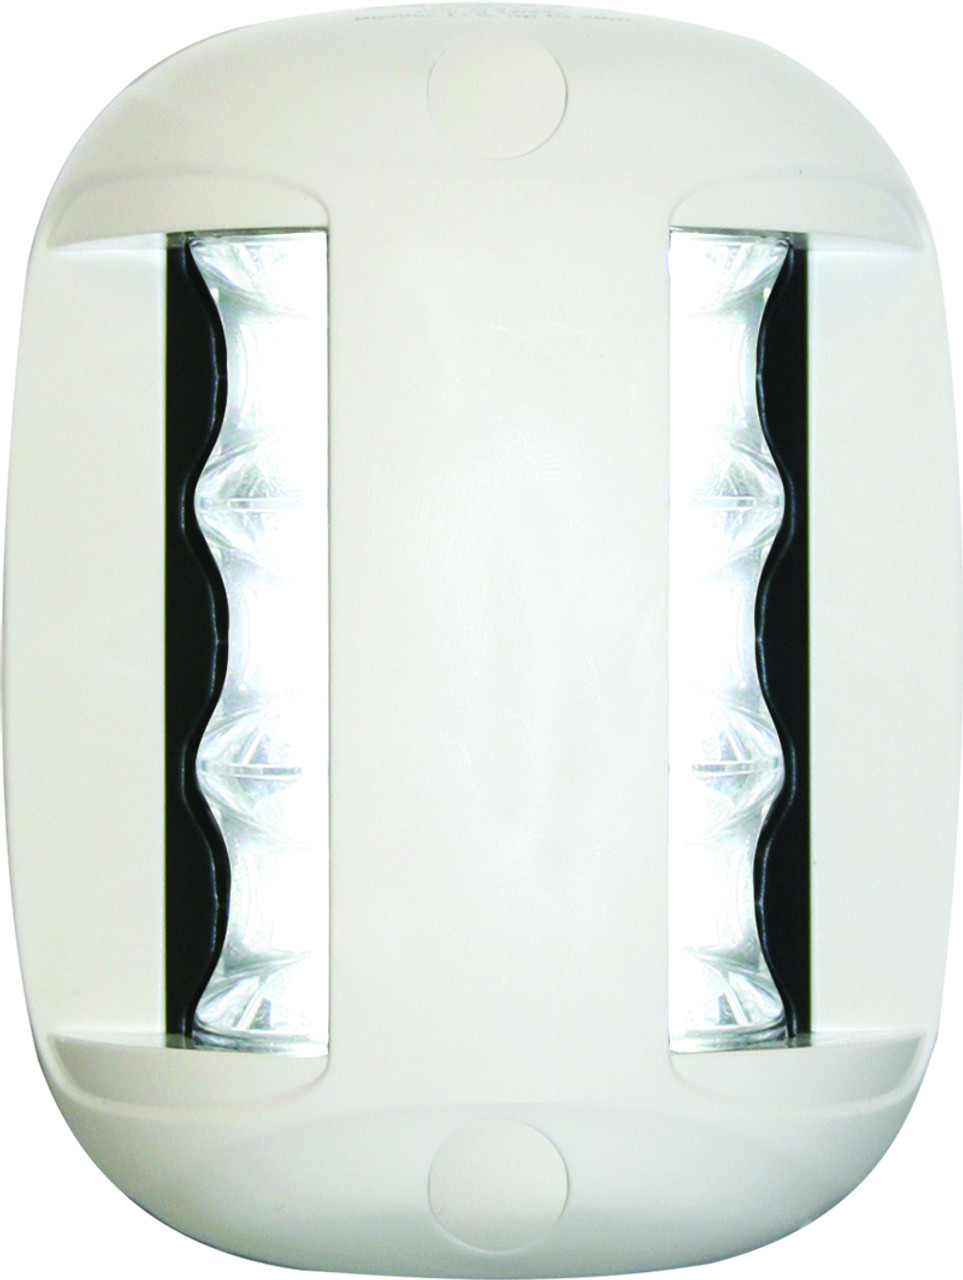 'FOS 20' LED Masthead Light - White Vertical Mount